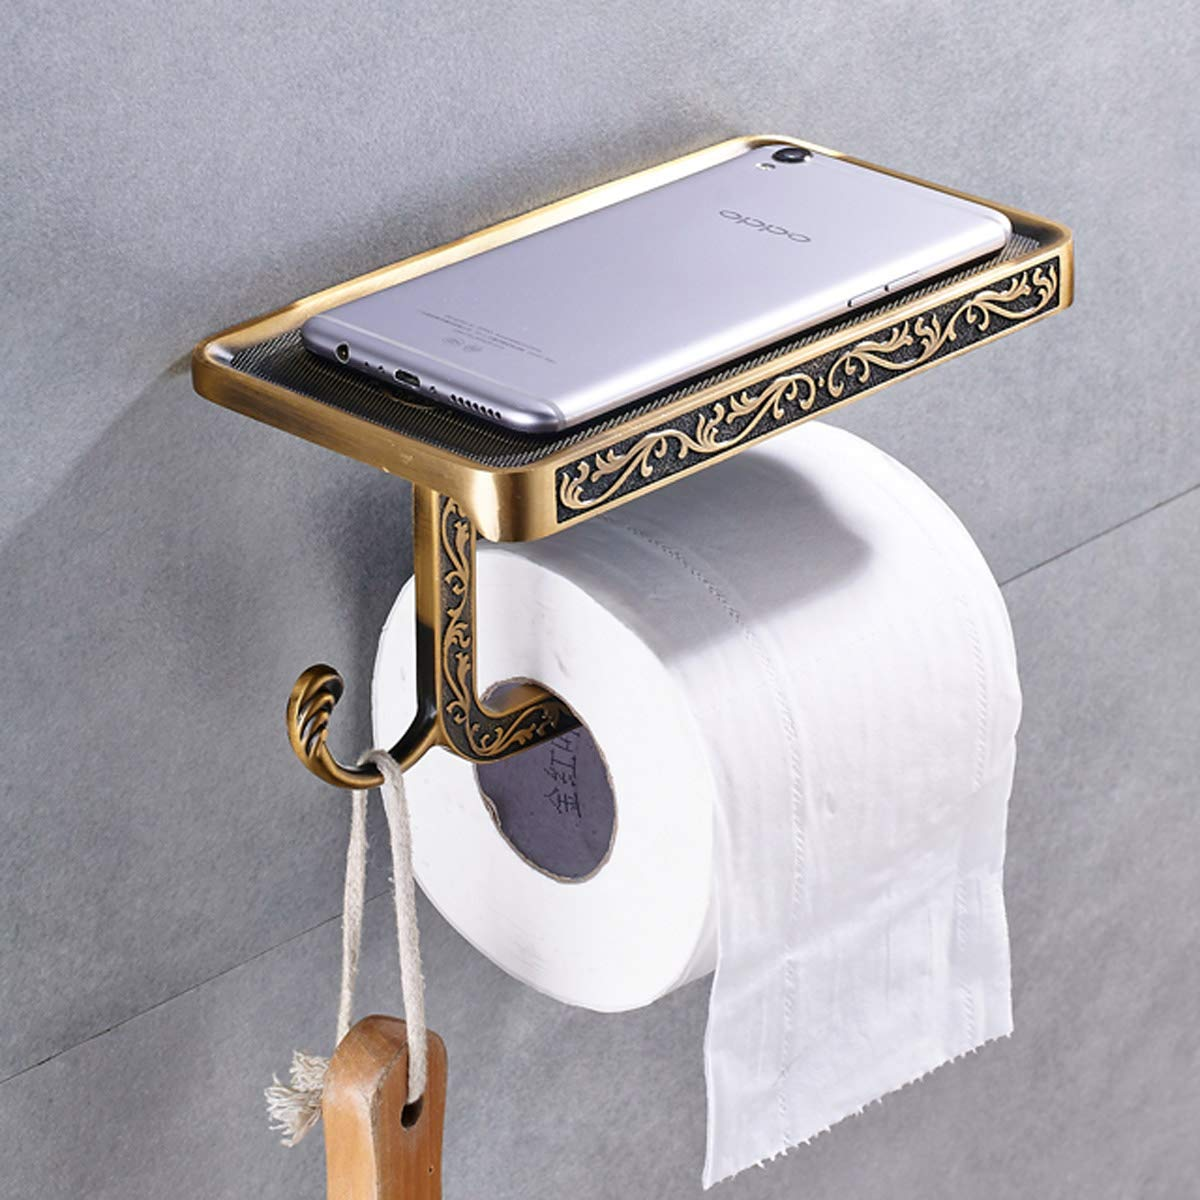 Toilet Roll Holder with Phone Shelf